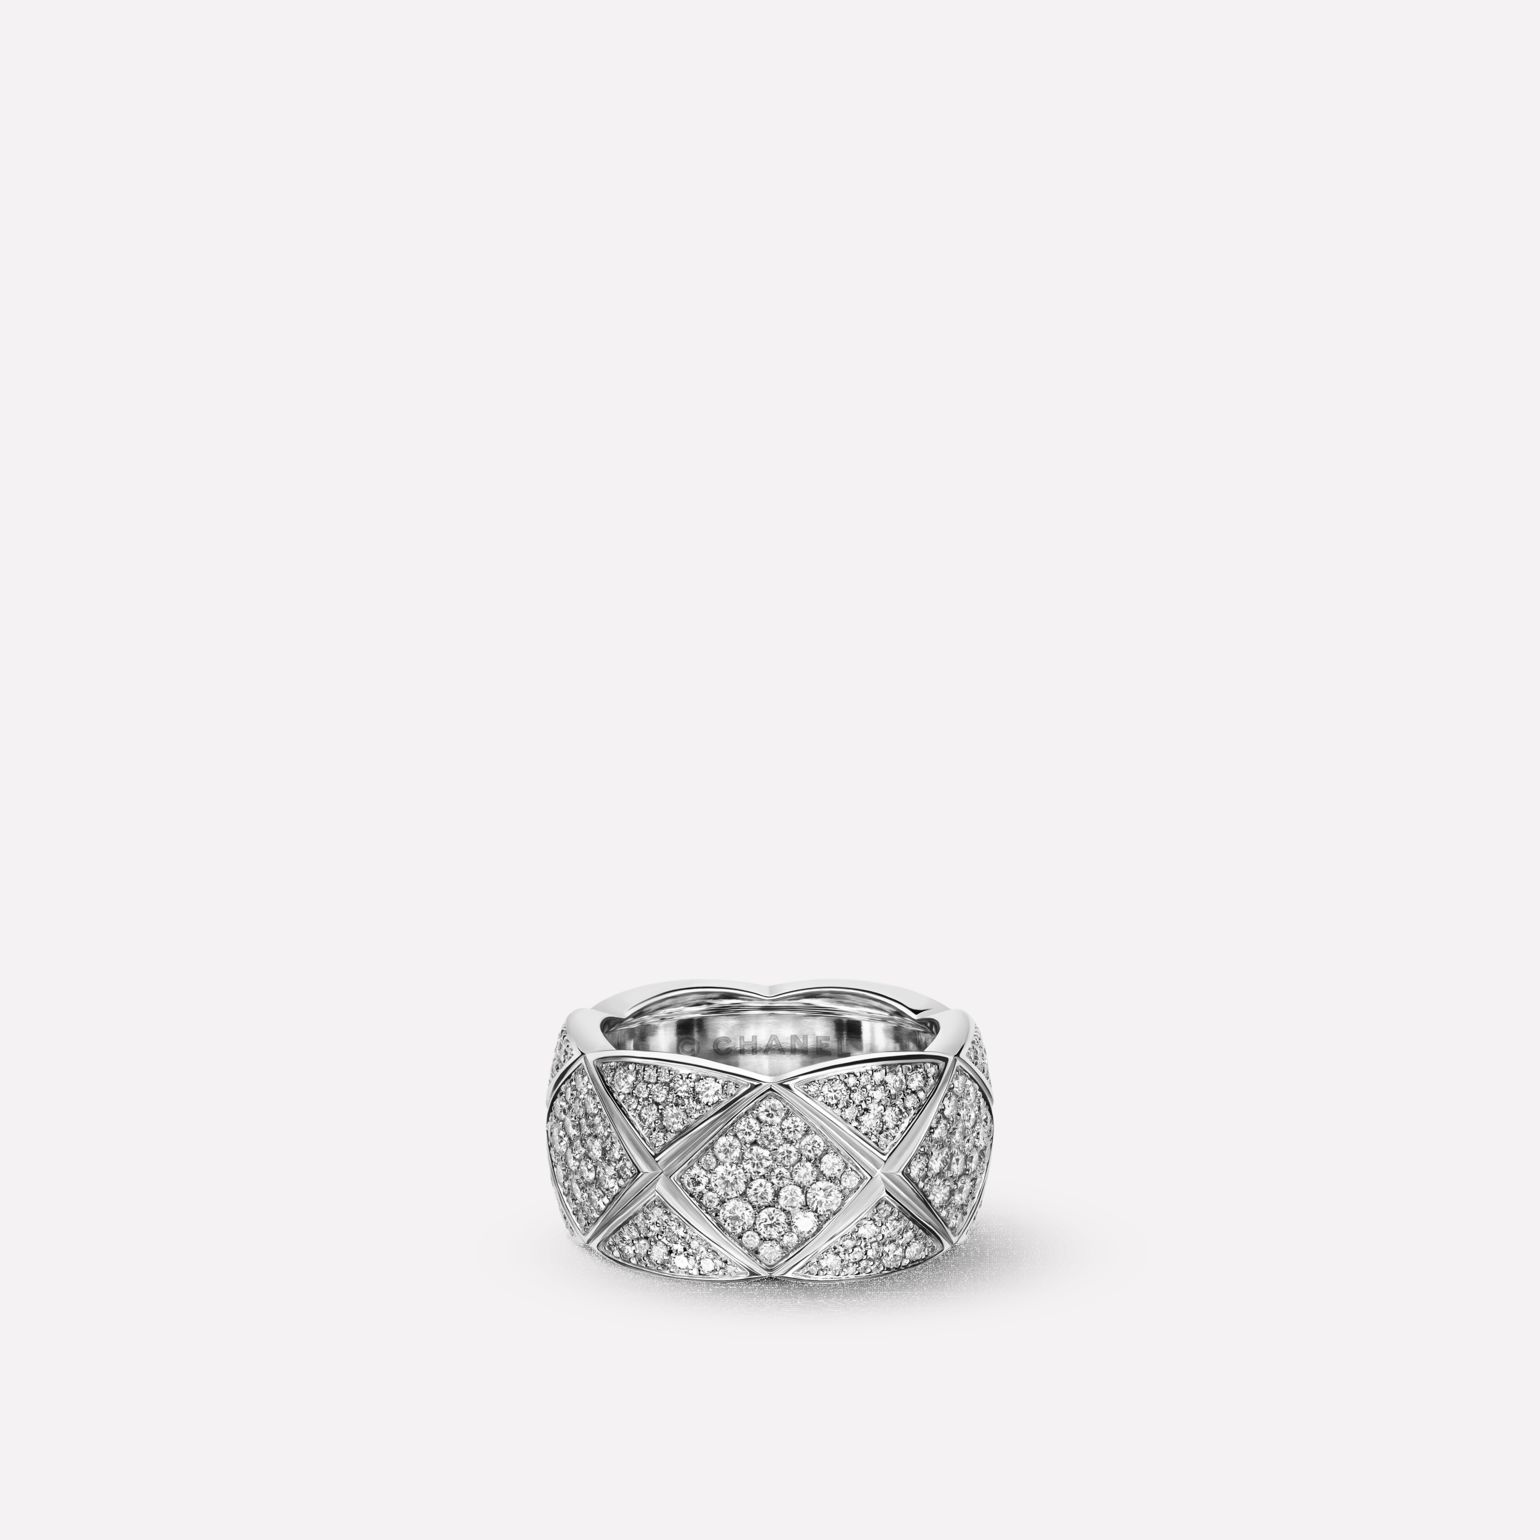 Coco Crush ring Quilted motif ring, medium version, in 18K white gold, all diamond pave